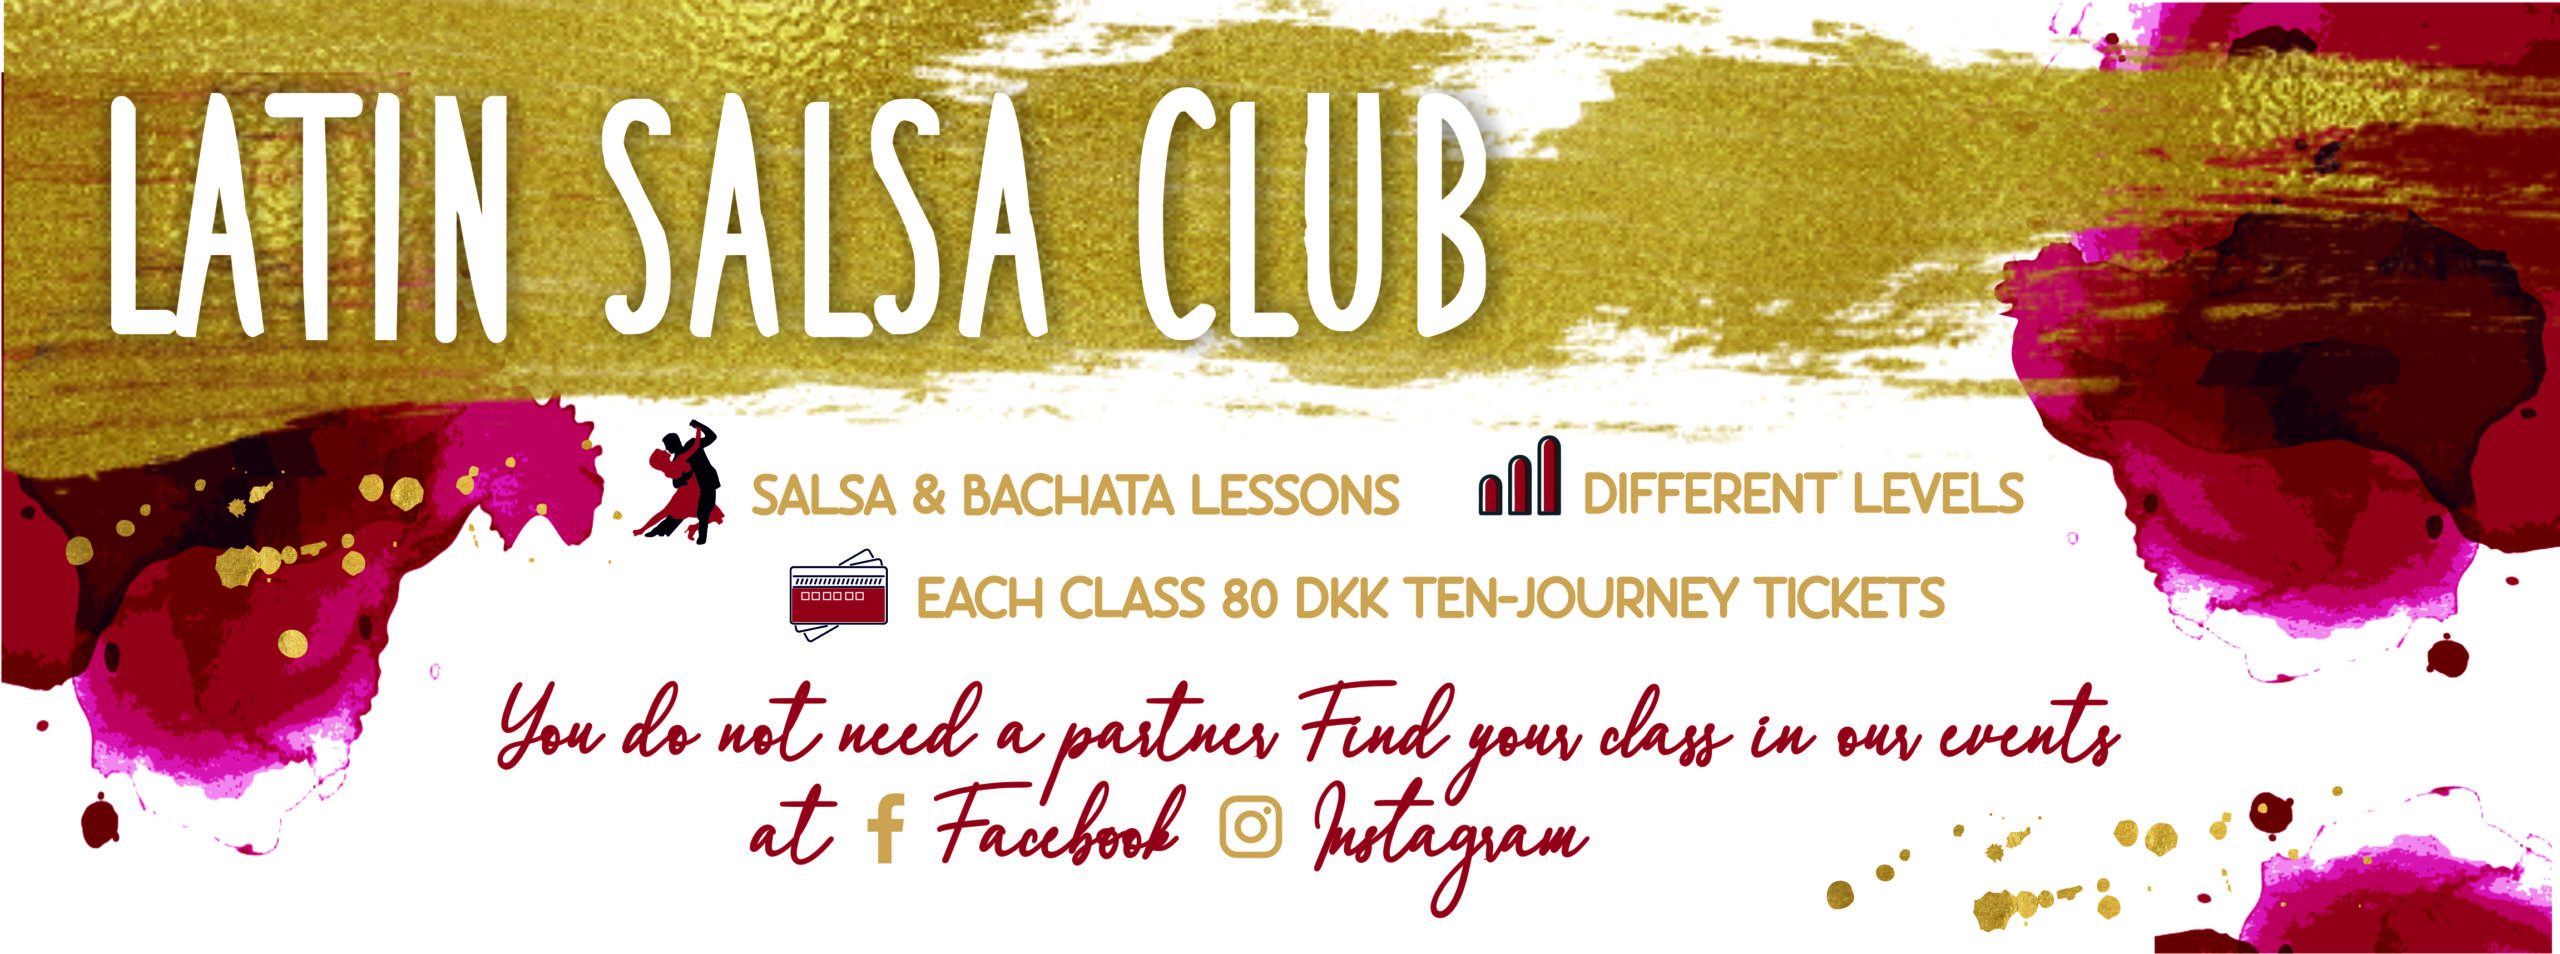 Latin Salsa Club